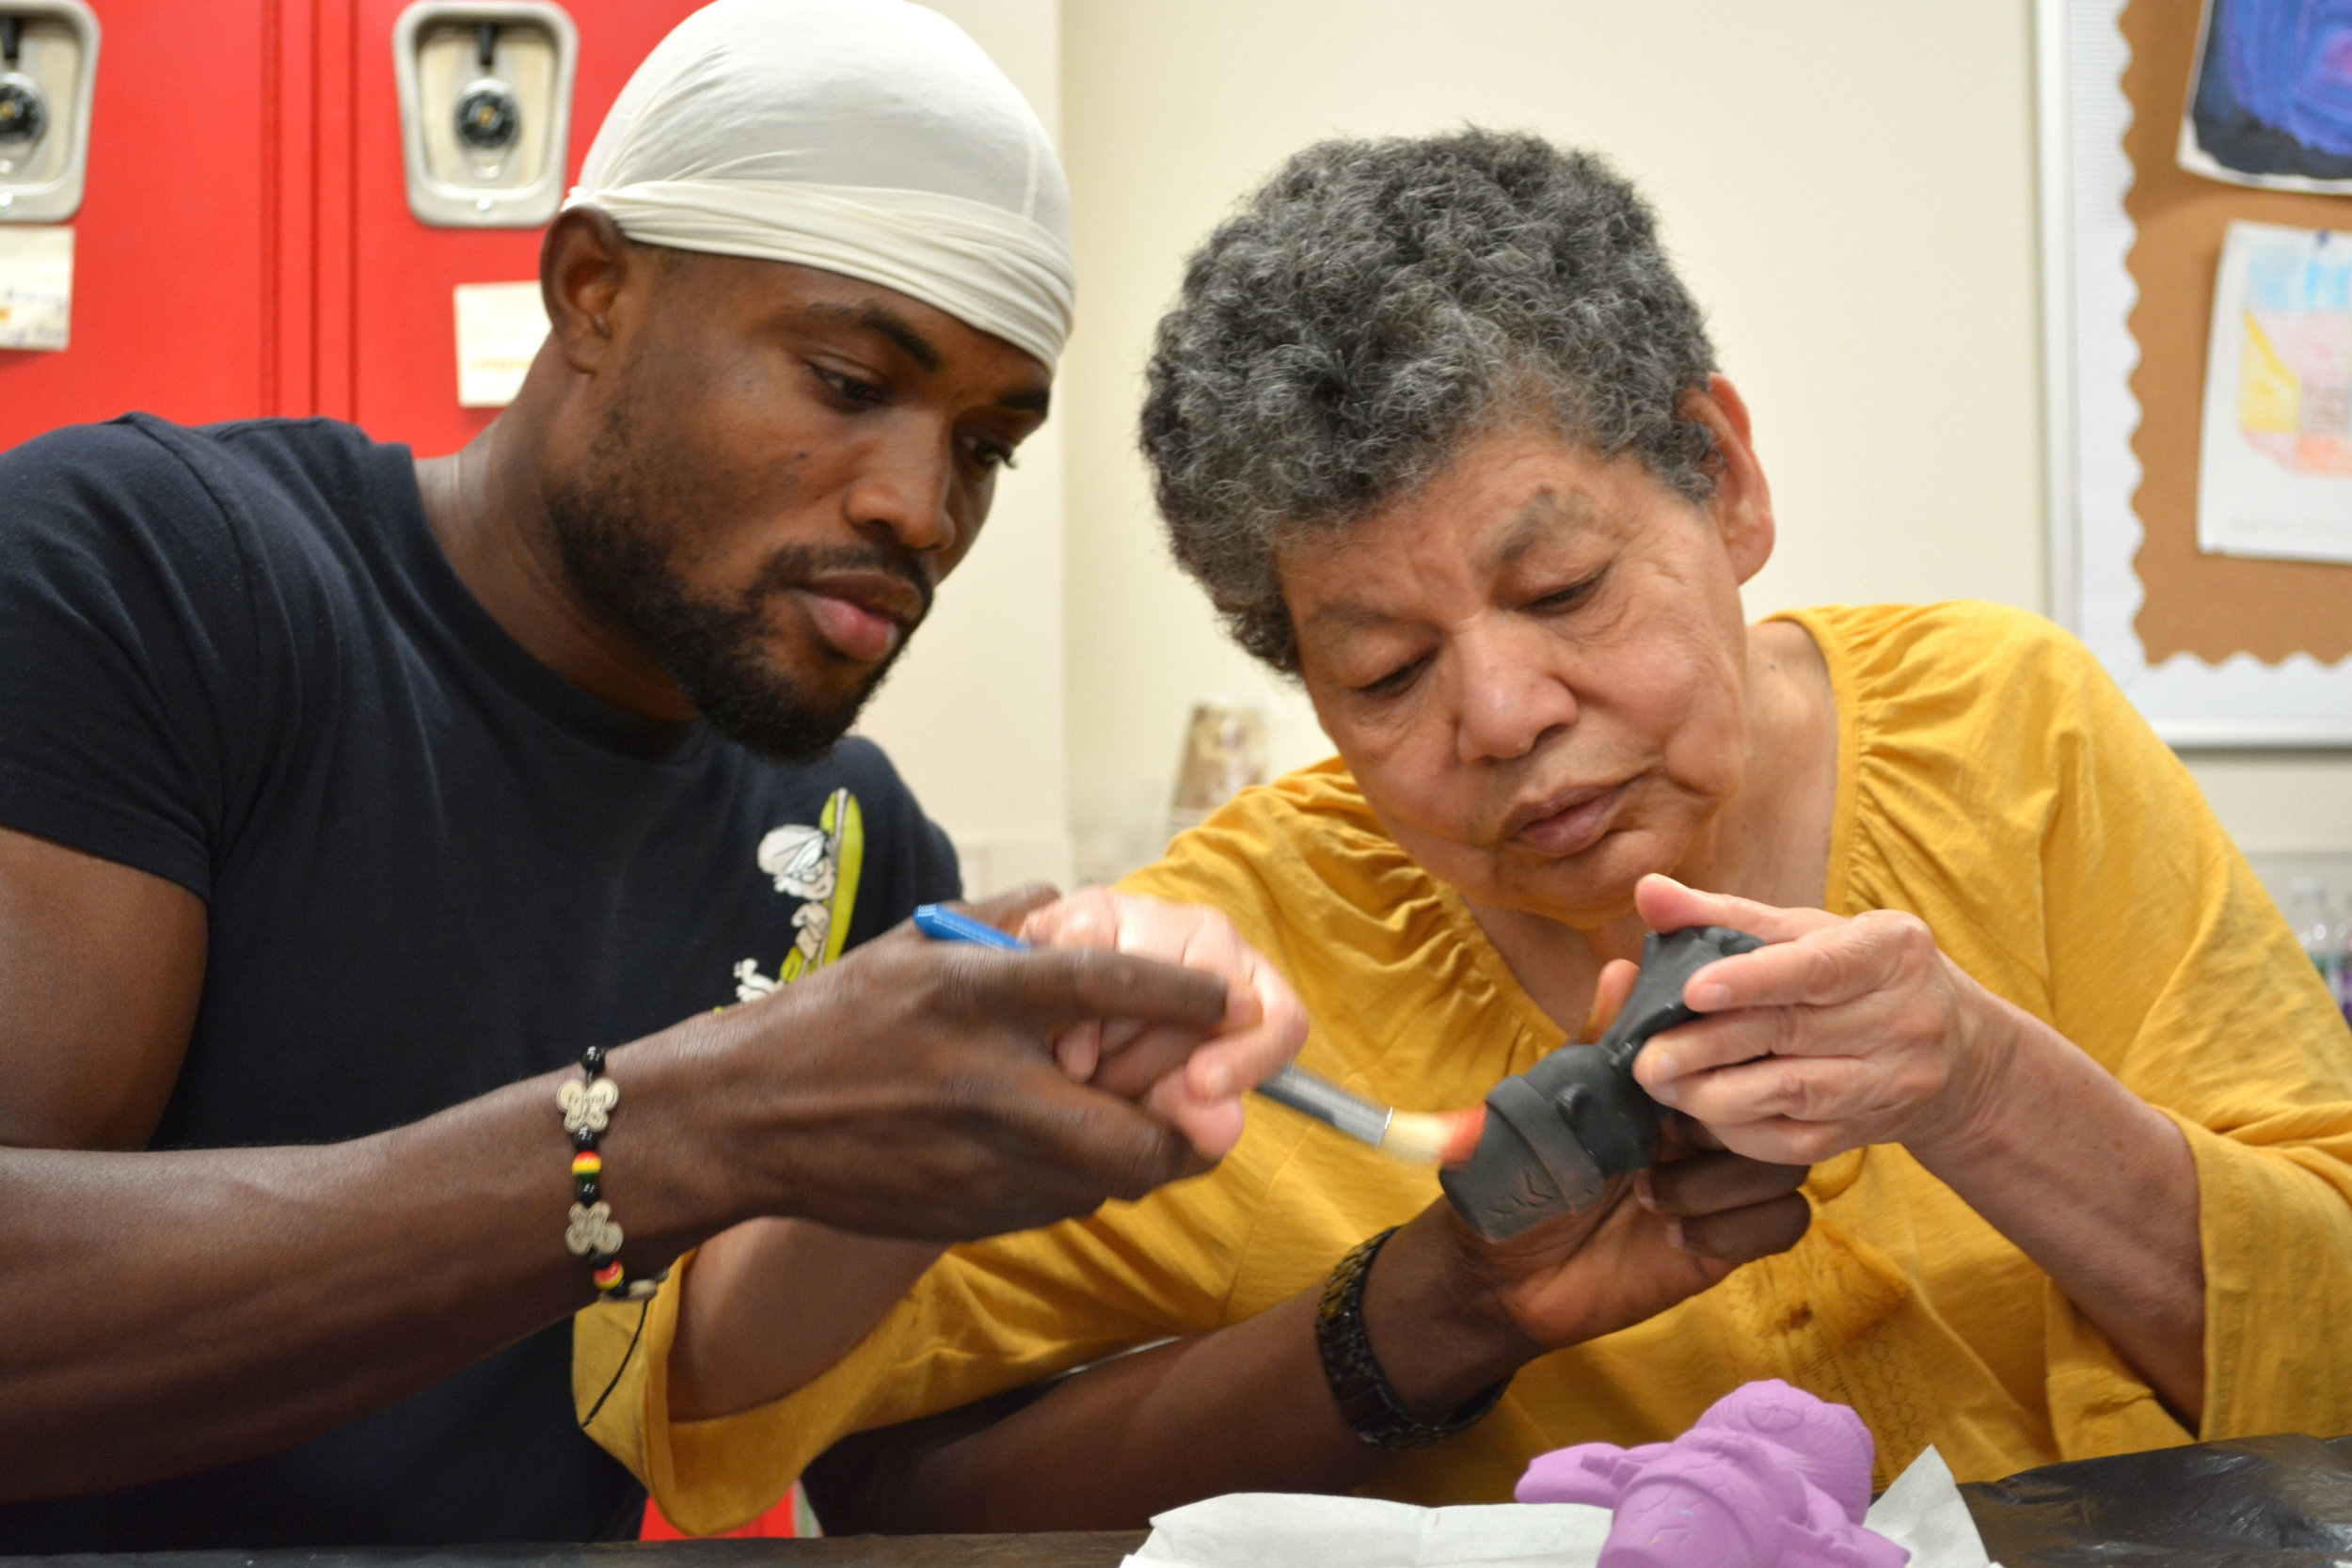 A Ceramics Class at Minute Man Arc